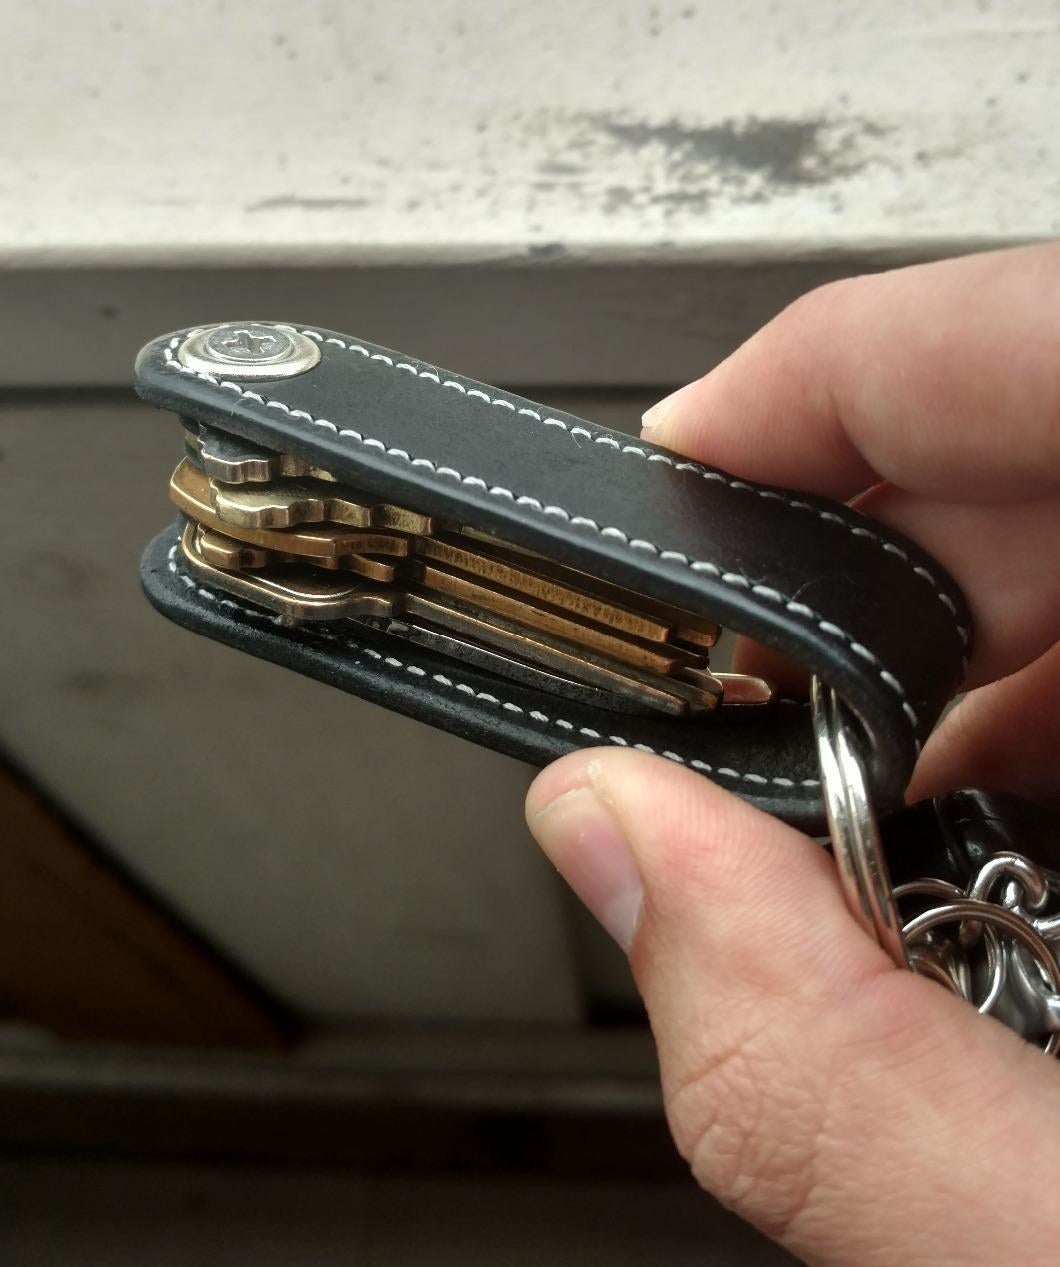 A hand holding a black leather key organizer showing multiple keys neatly stacked inside